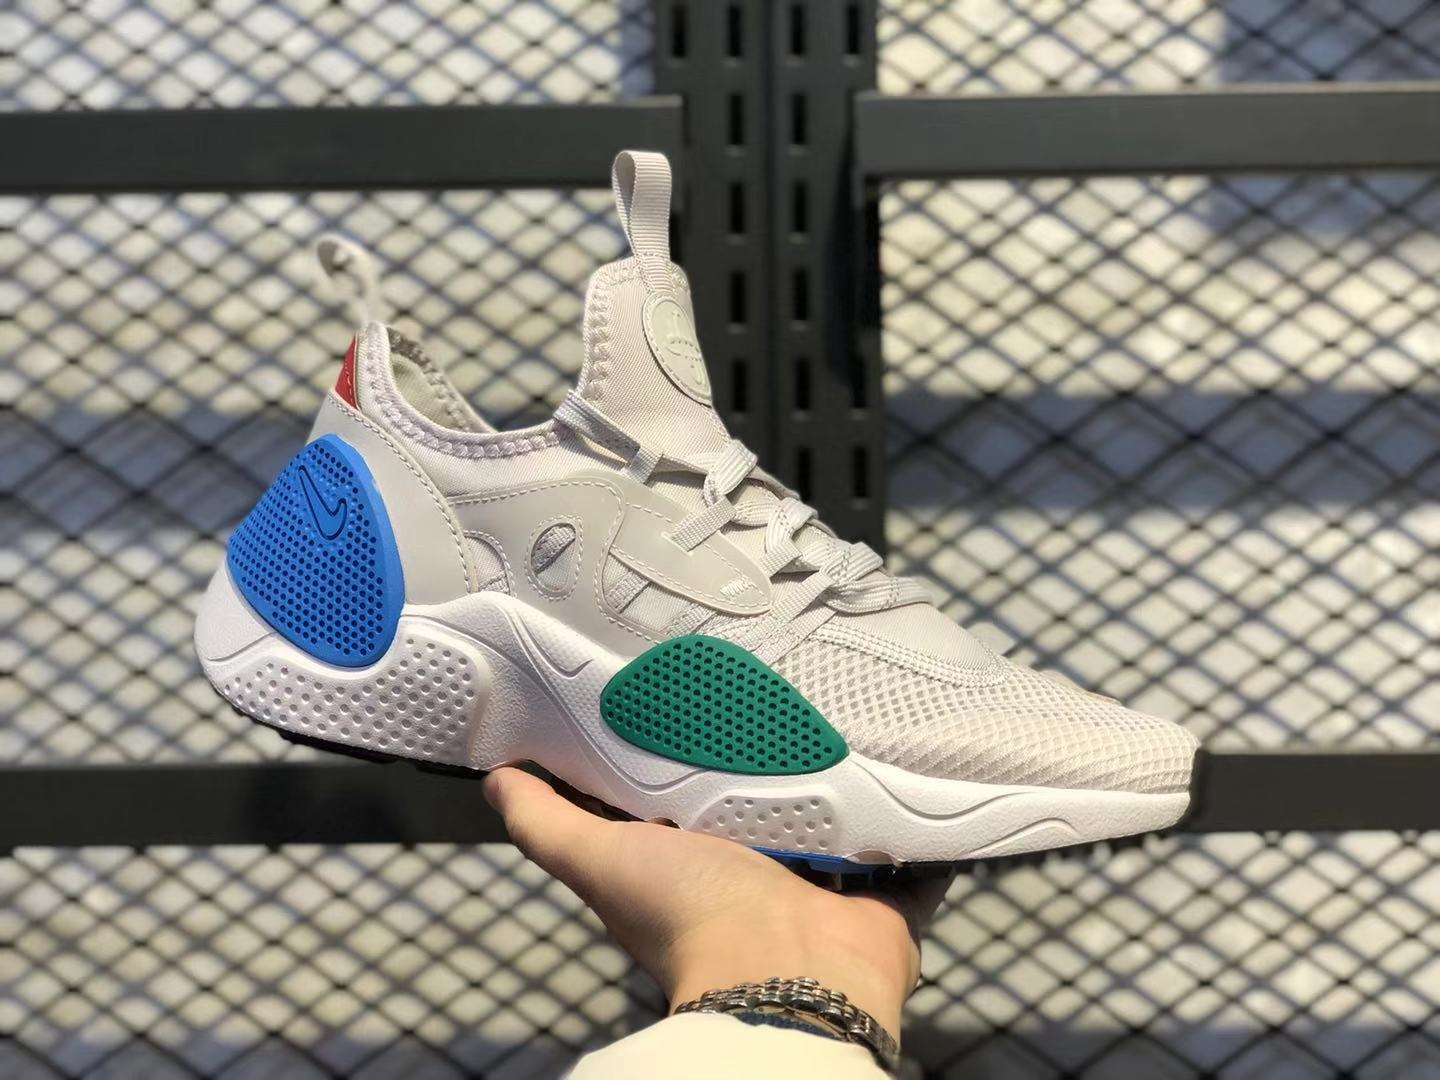 Nike Air Huarache E.D.G.E.Vast Grey/Tour Yellow-Neptune Green-Photo Blue AT4025-002